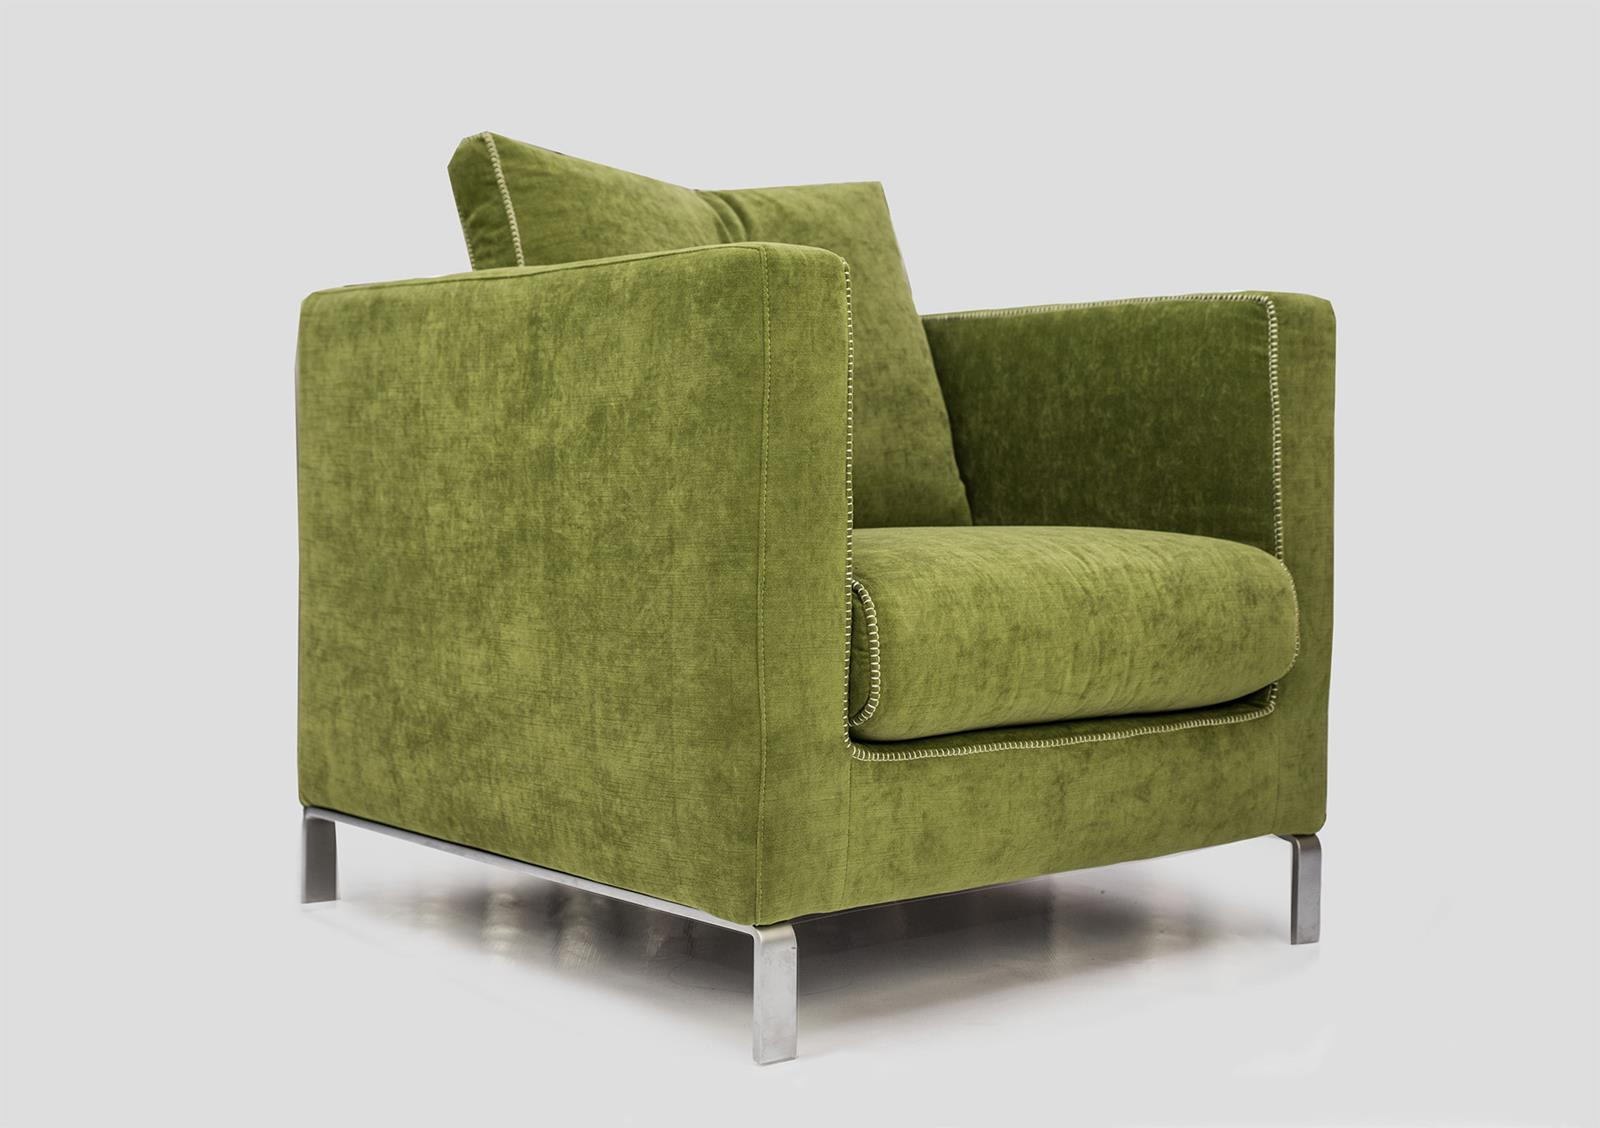 armchair made in Italy